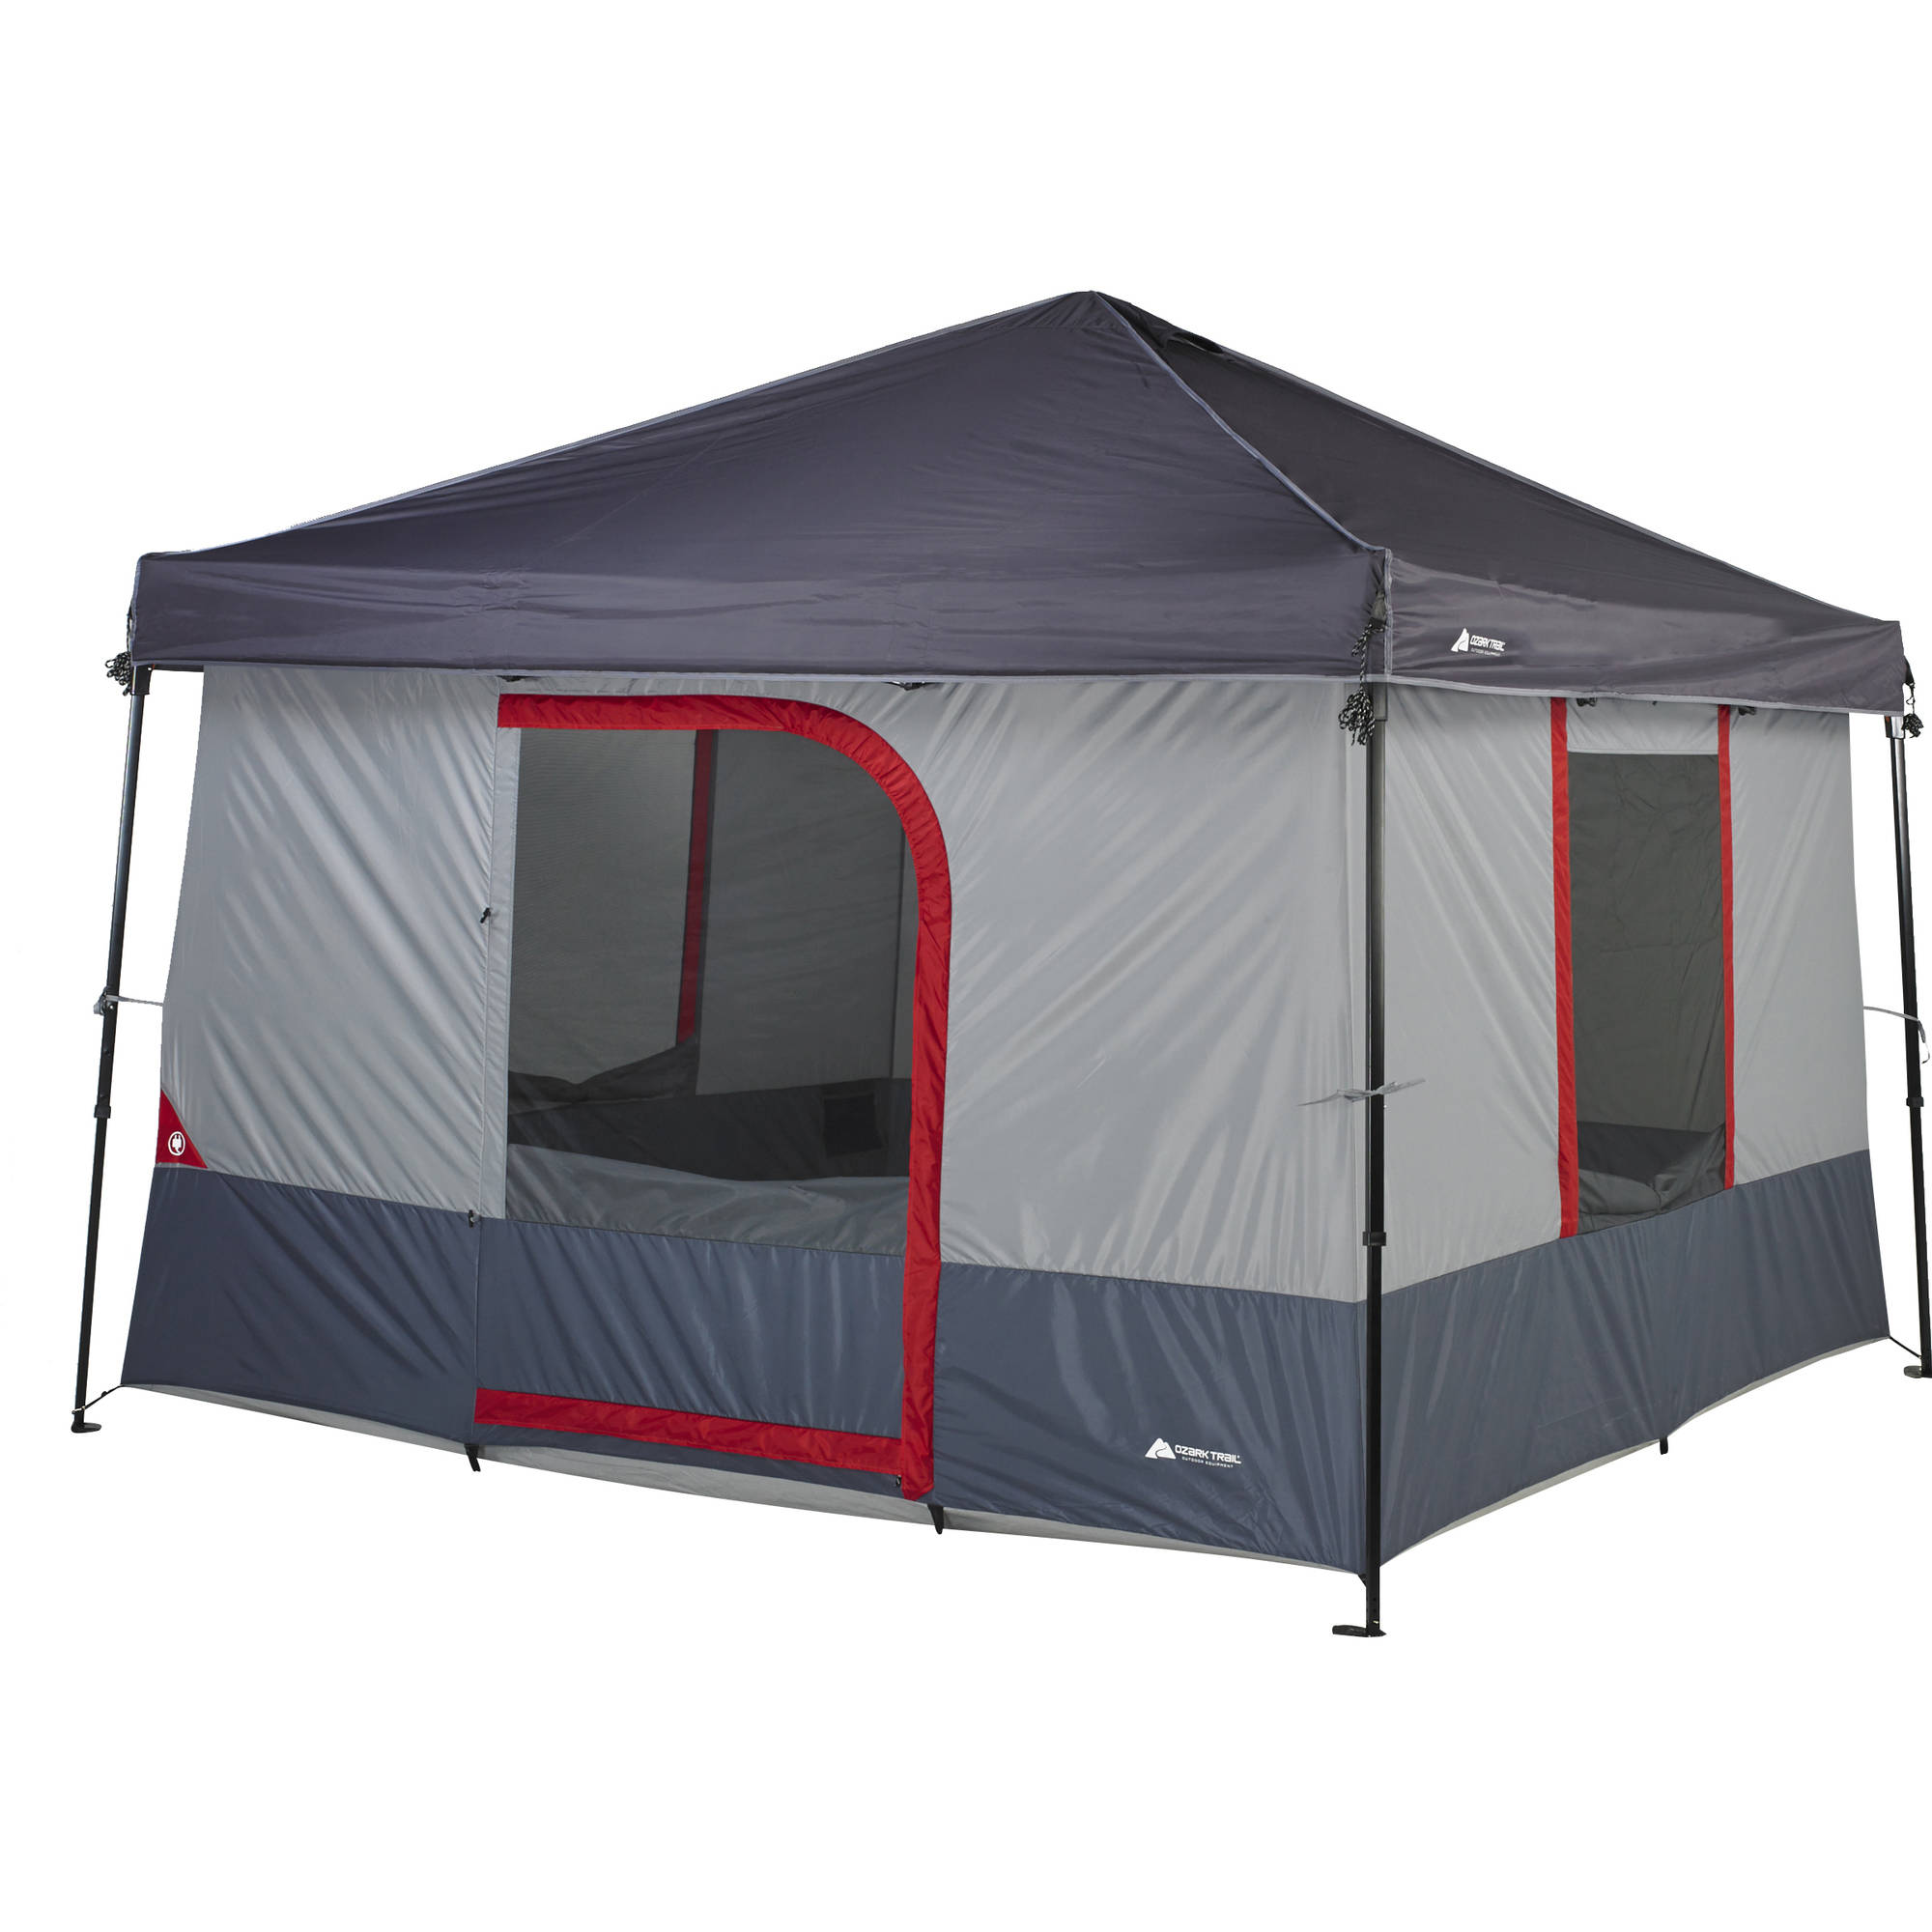 4 Camping Details About New Ozark Trail 6 Person Connectent For Canopy Outdoor Family Camping Tent